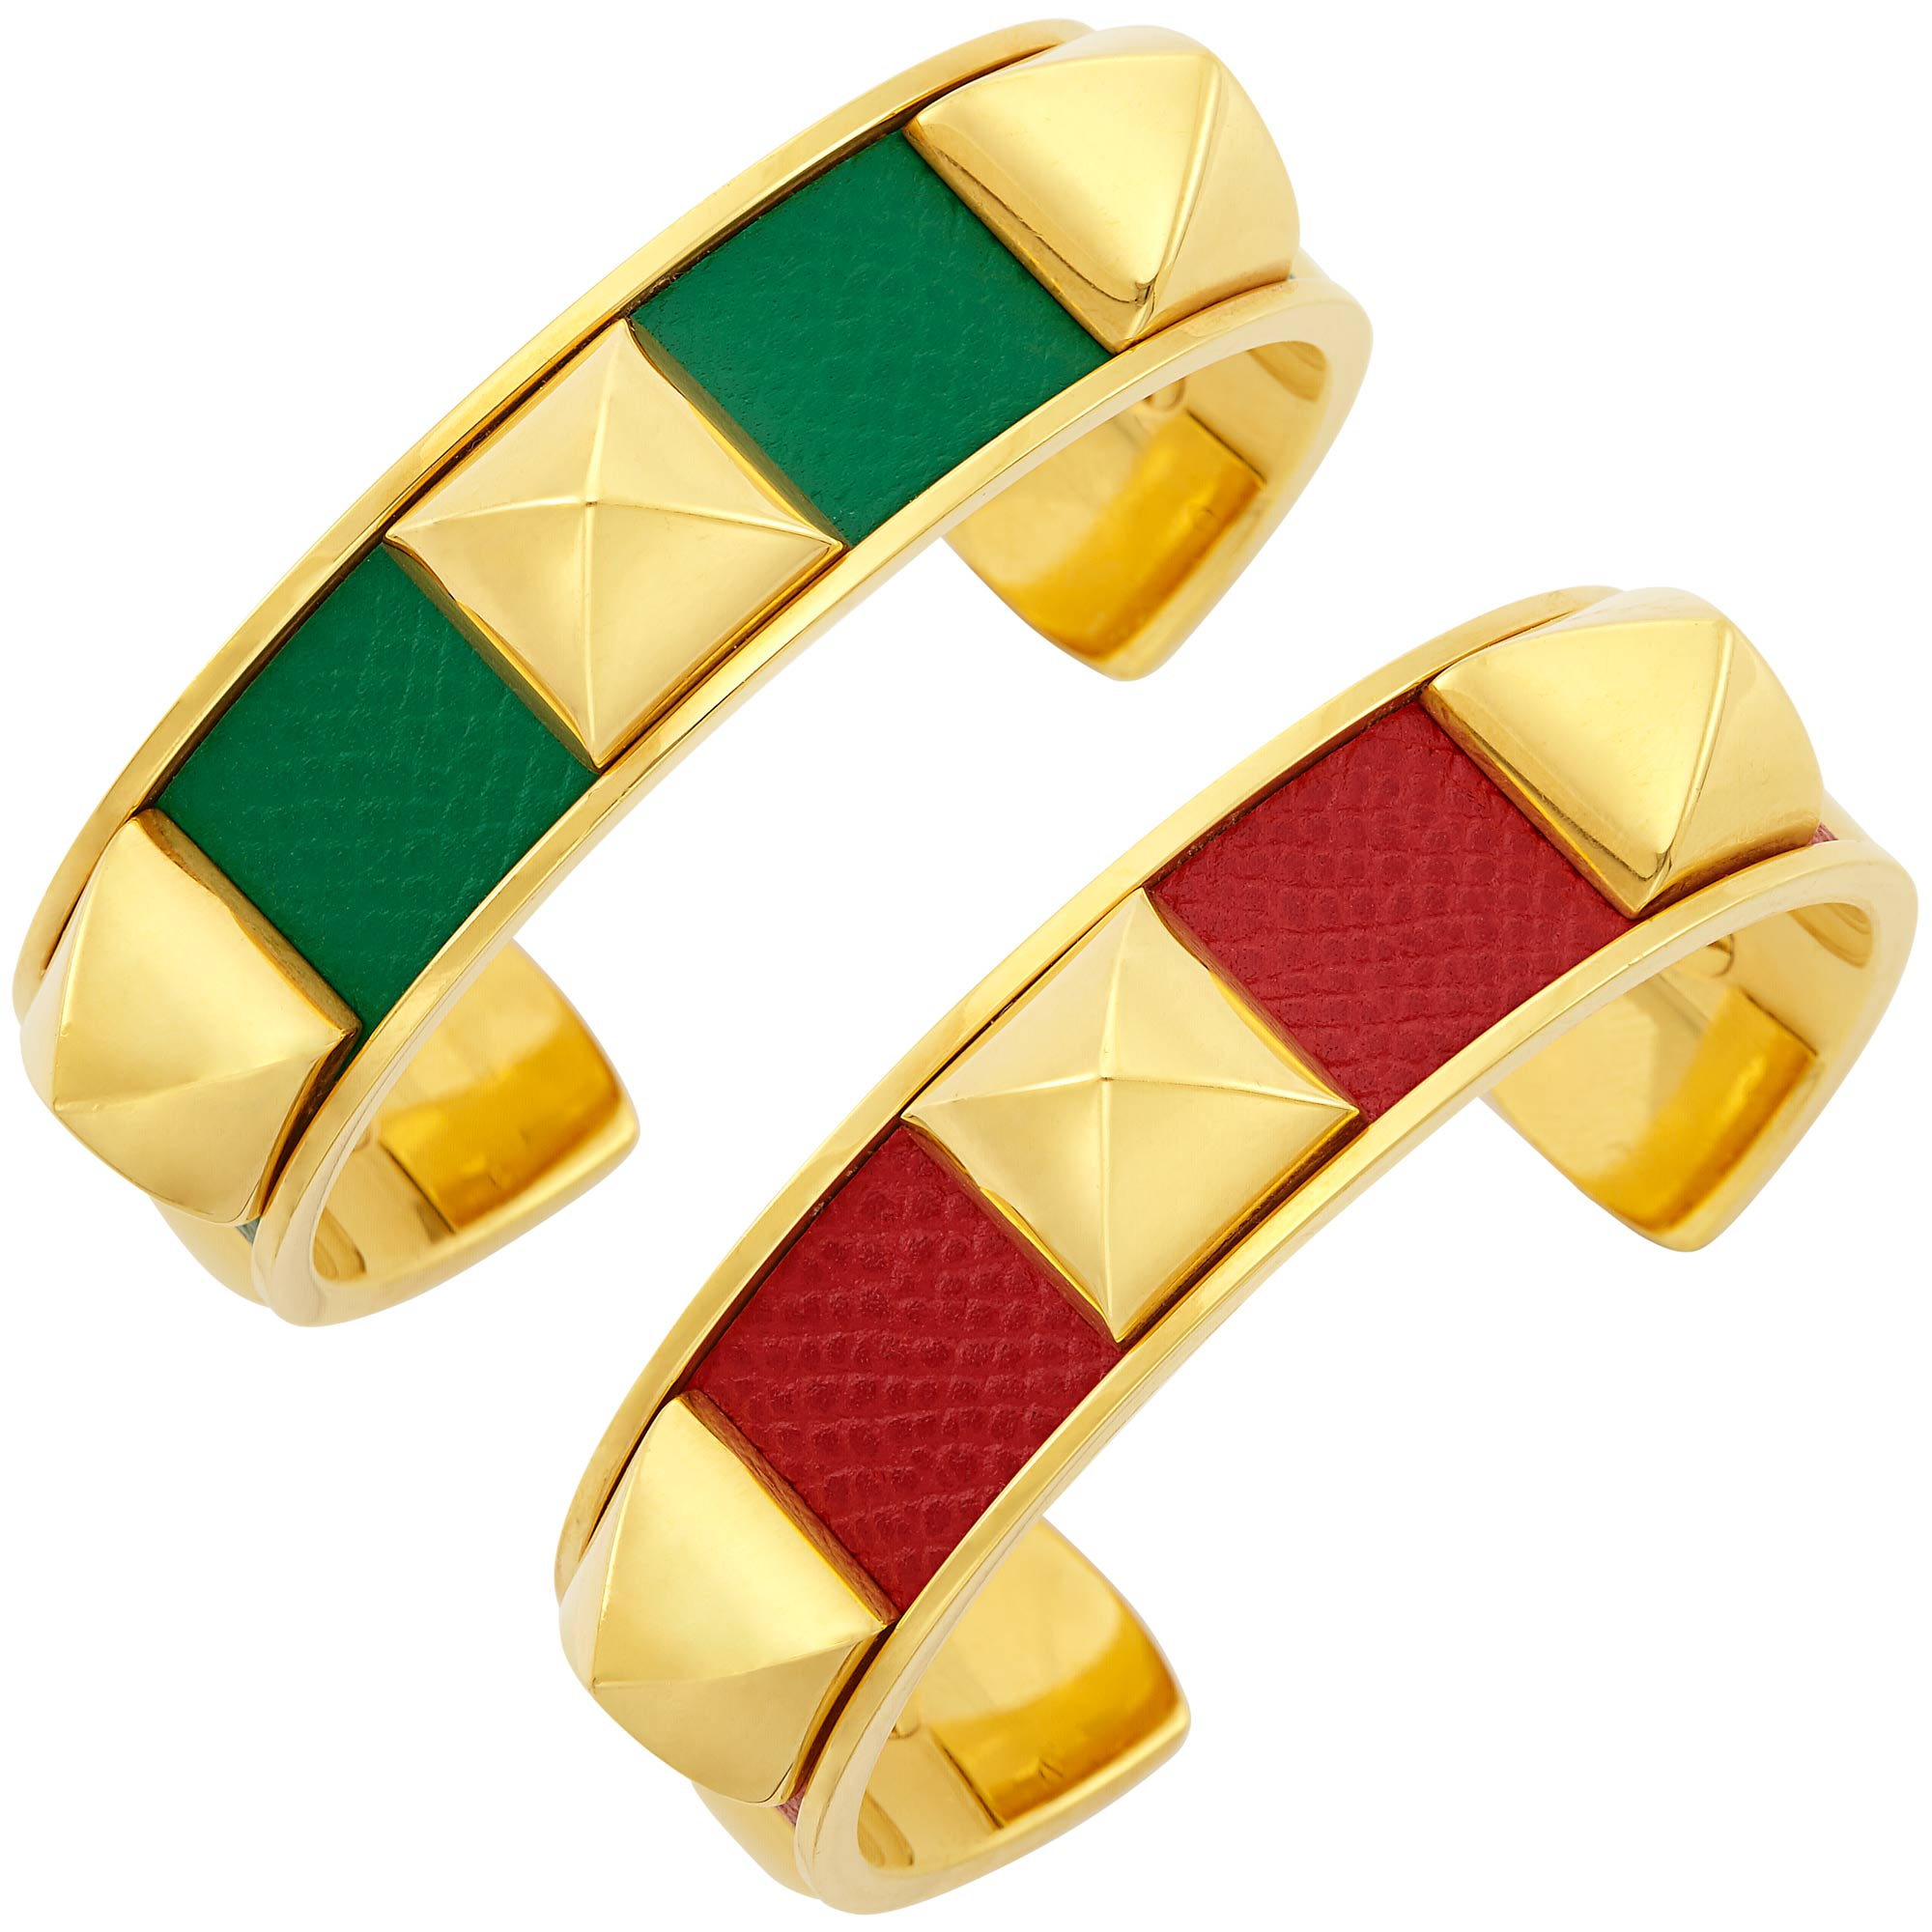 Lot image - Pair of Gold-Plated and Red and Green Leather Stud Medor Cuff Bangle Bracelets, Hermès